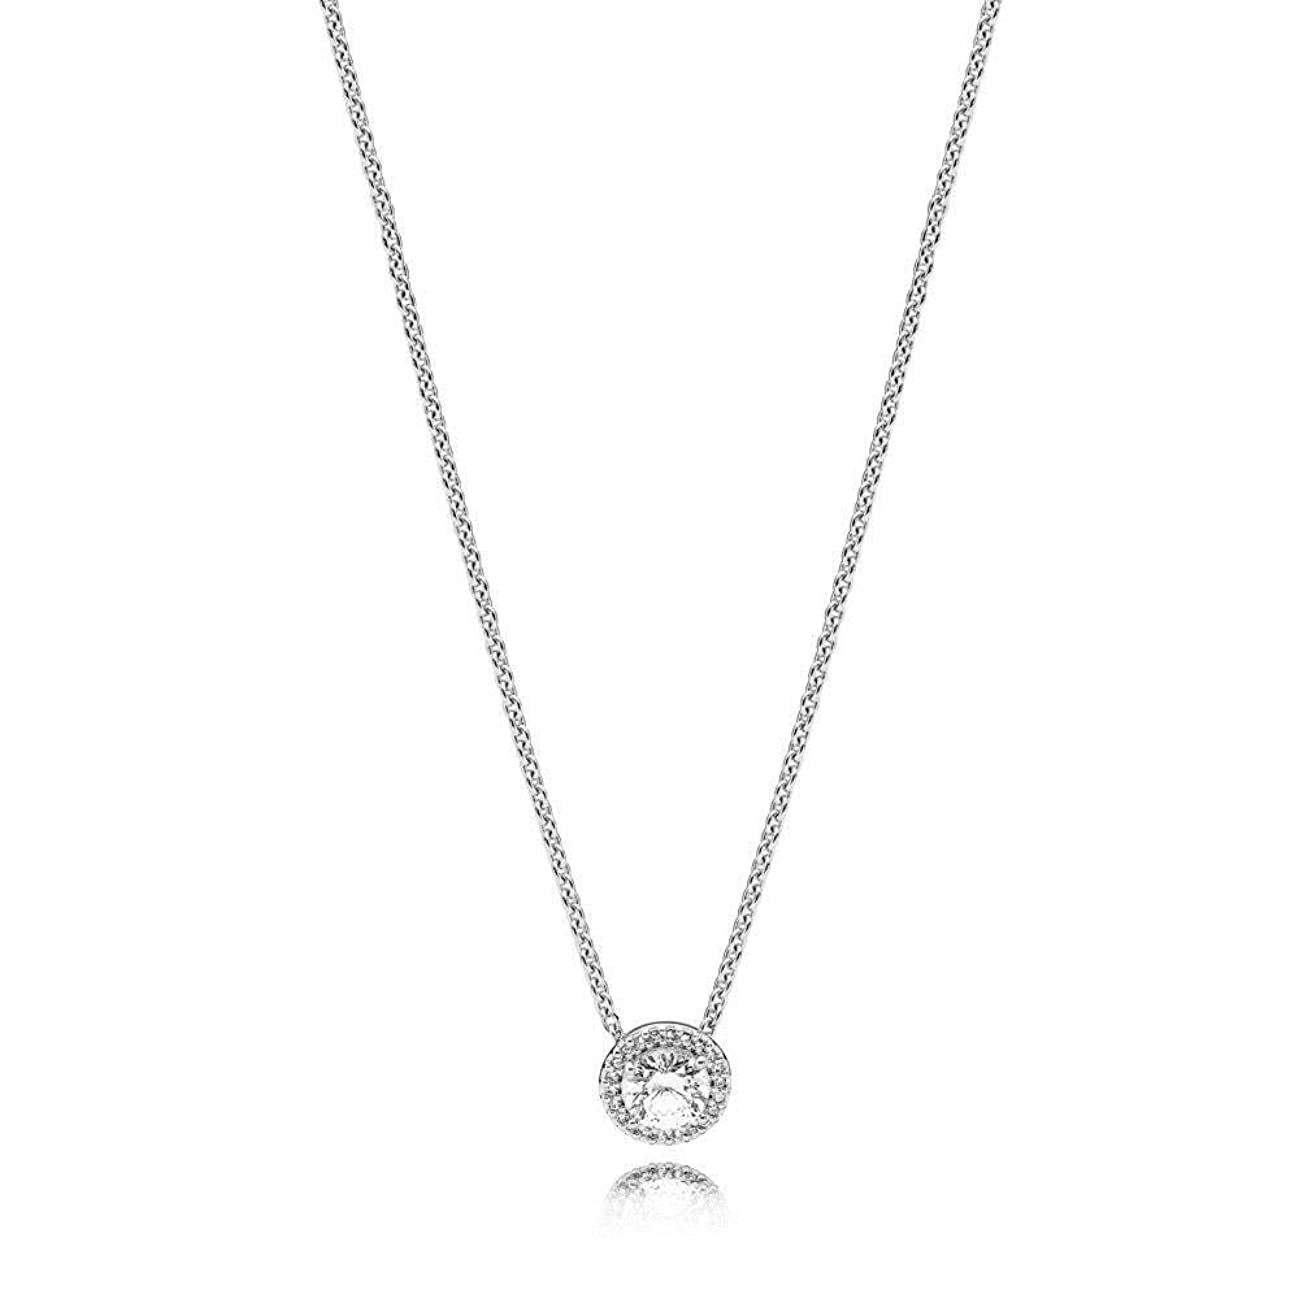 PANDORA Classic Elegance Necklace, Sterling Silver, Clear Cubic Zirconia, 17.8 IN